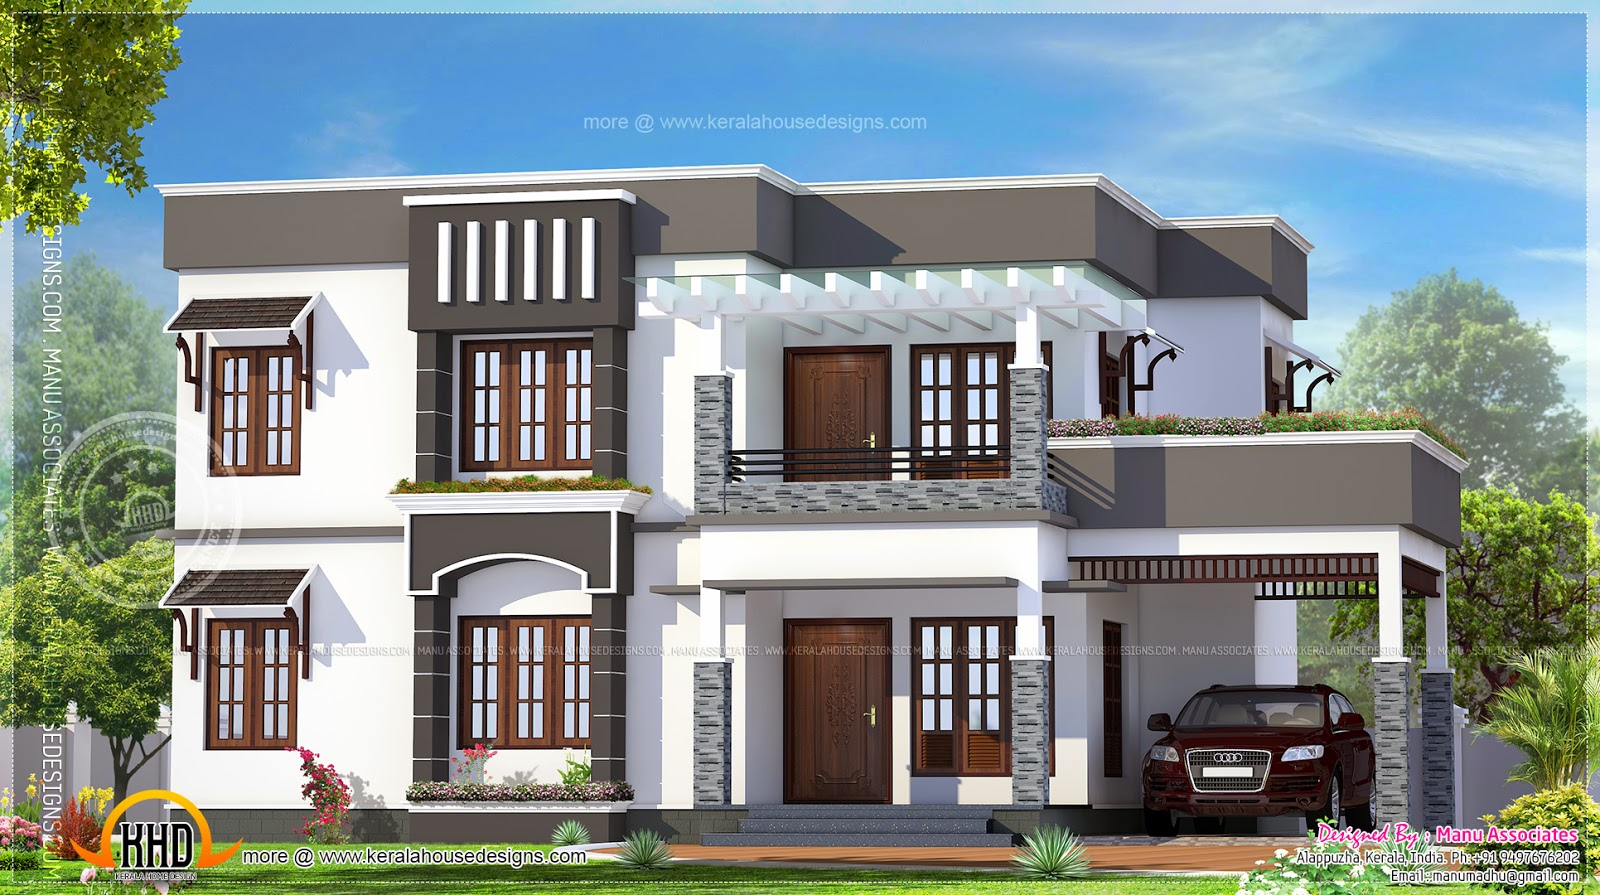 4 bhk flat roof house exterior kerala home design and for Home outer design images